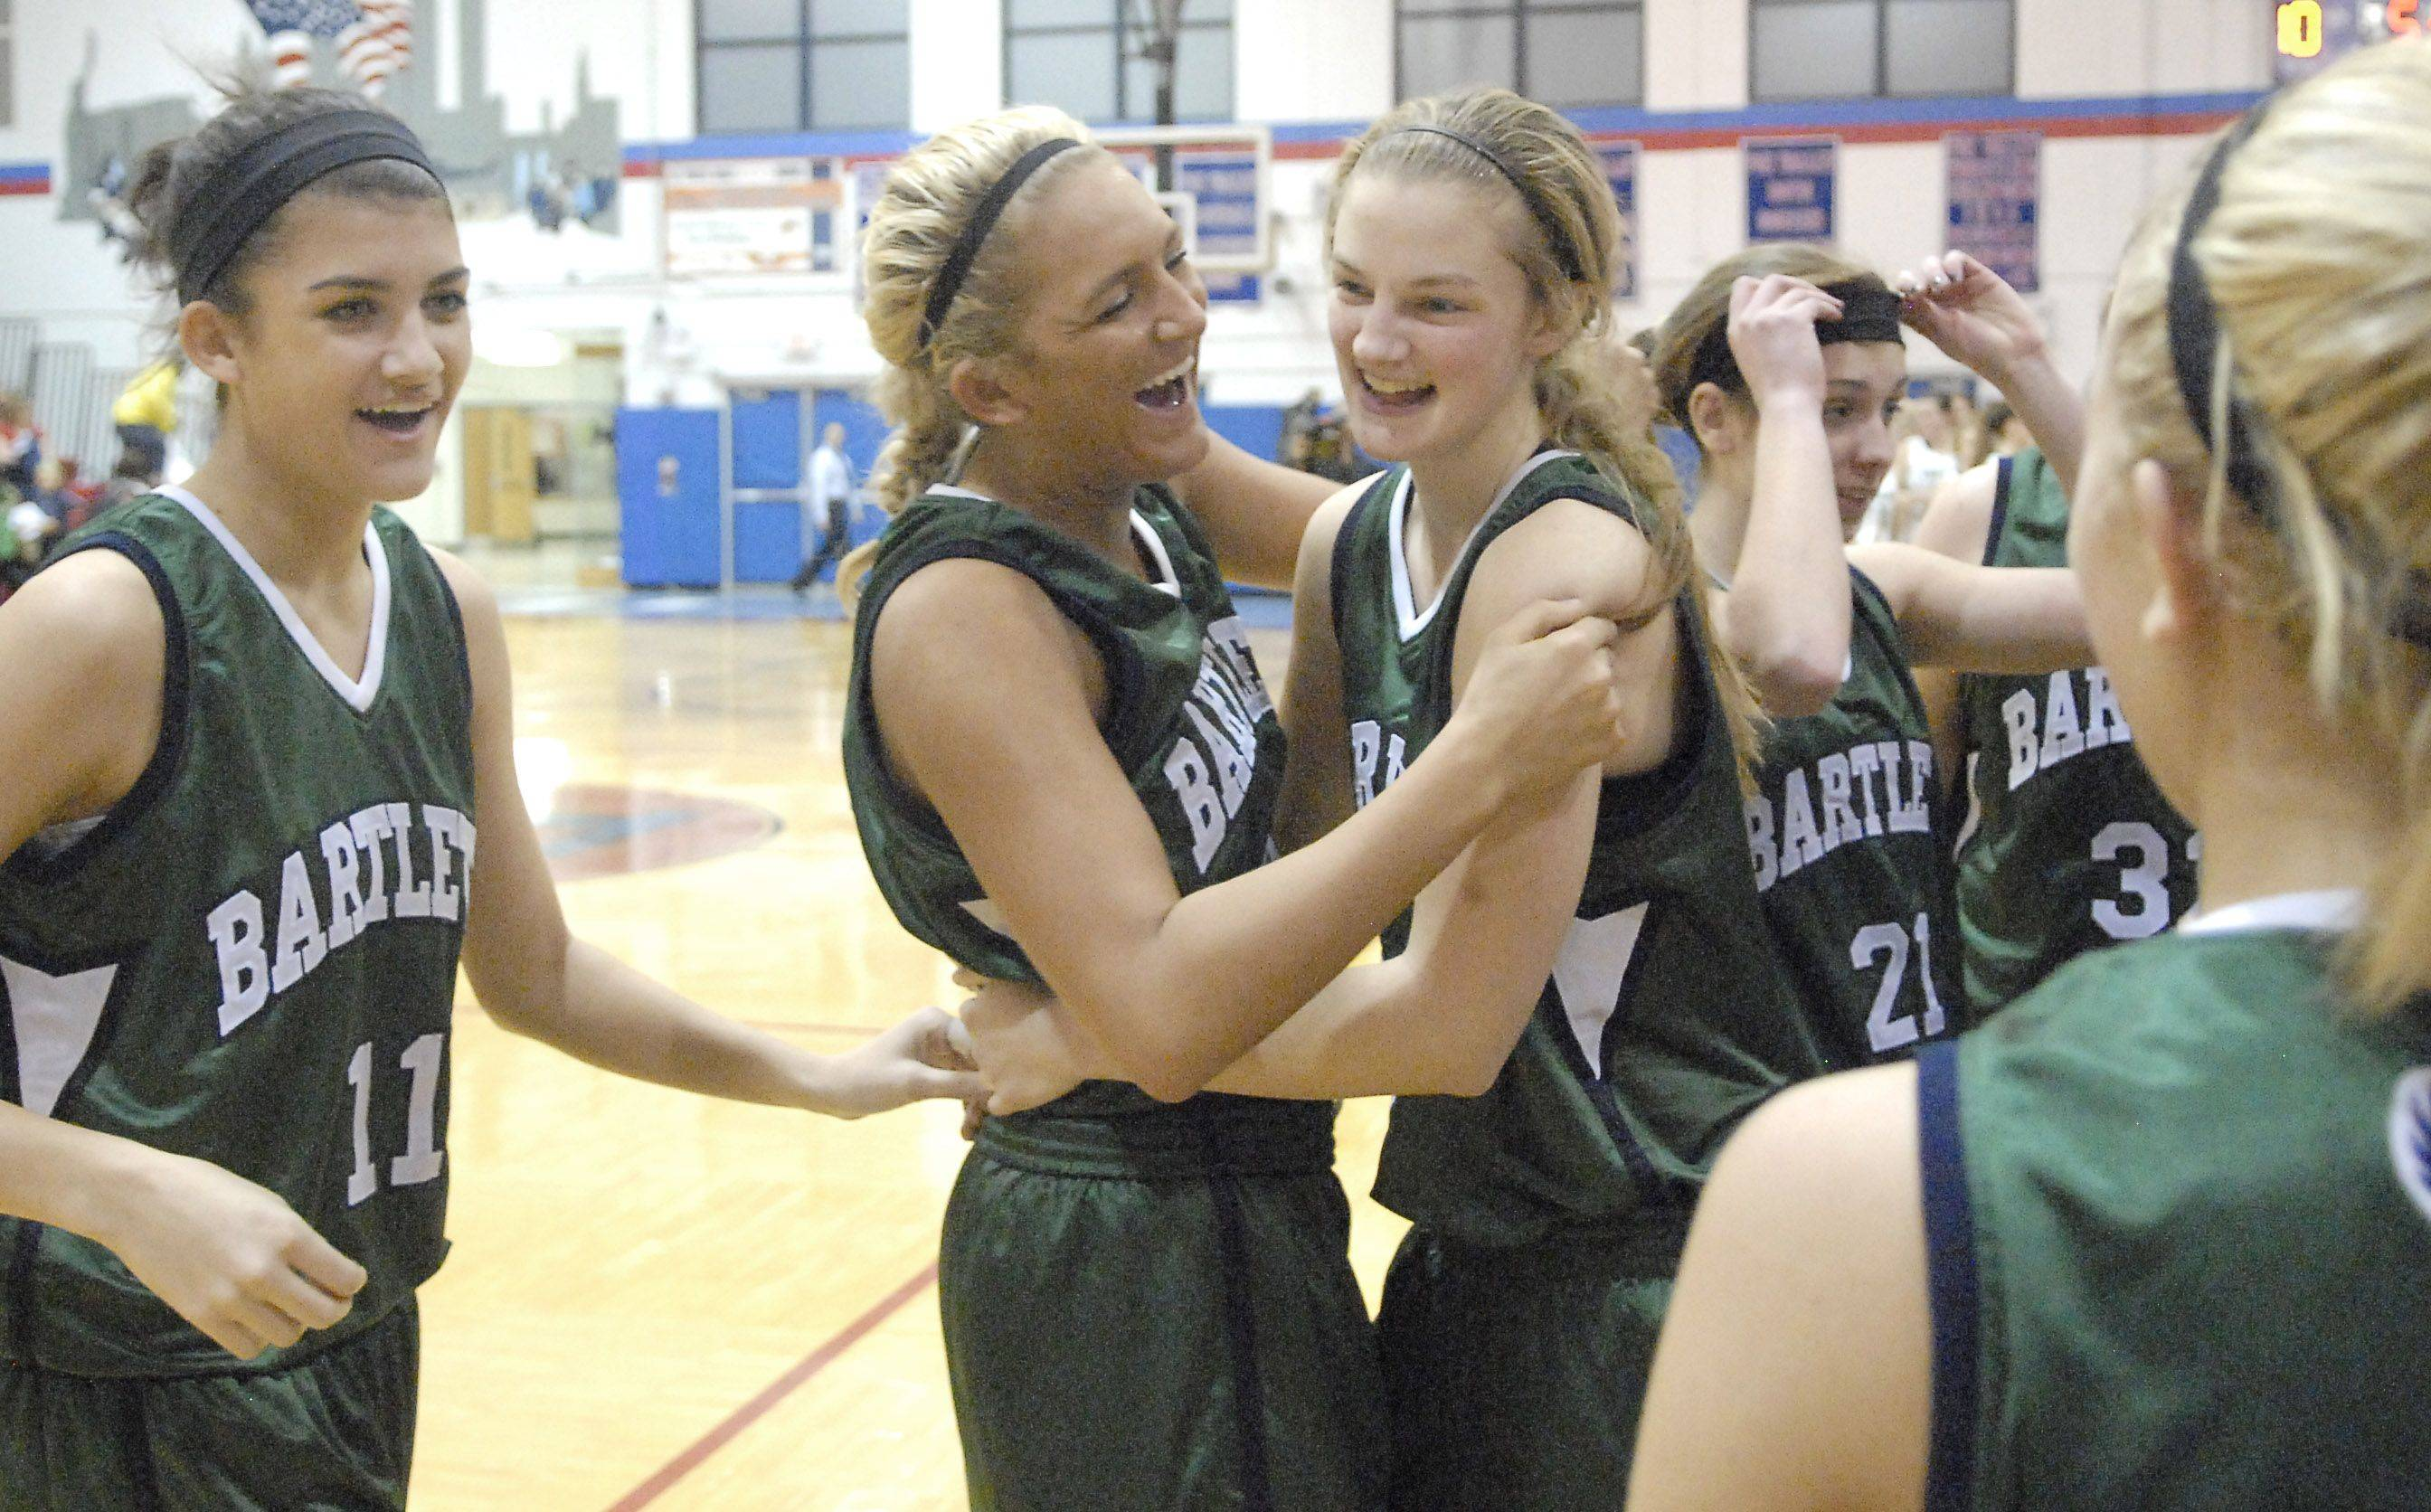 Charger Classic title is all Bartlett's; Conniff reaches 1,000